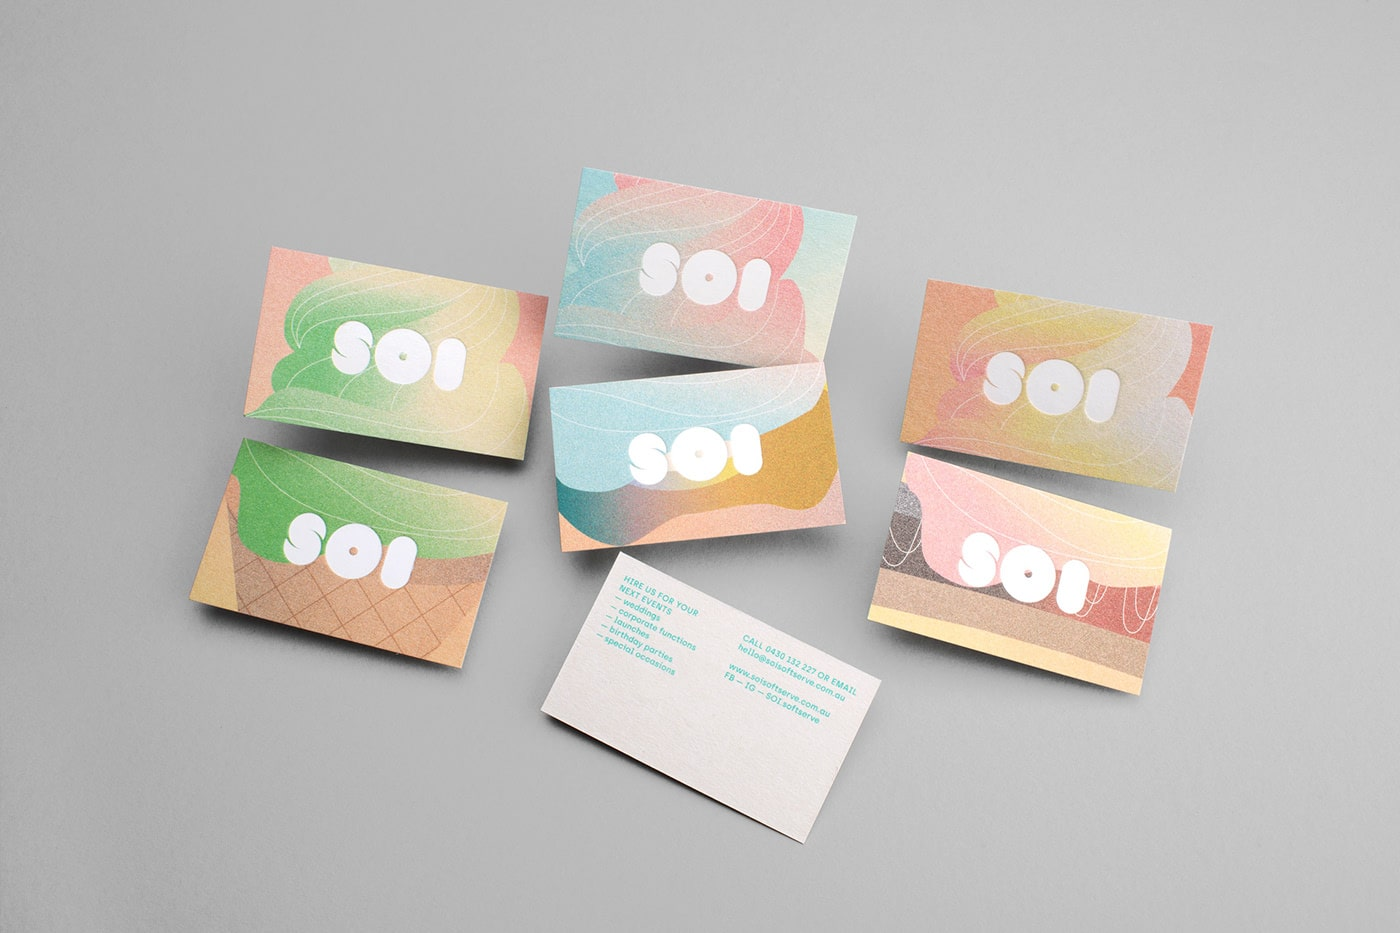 business cards marketing collateral example